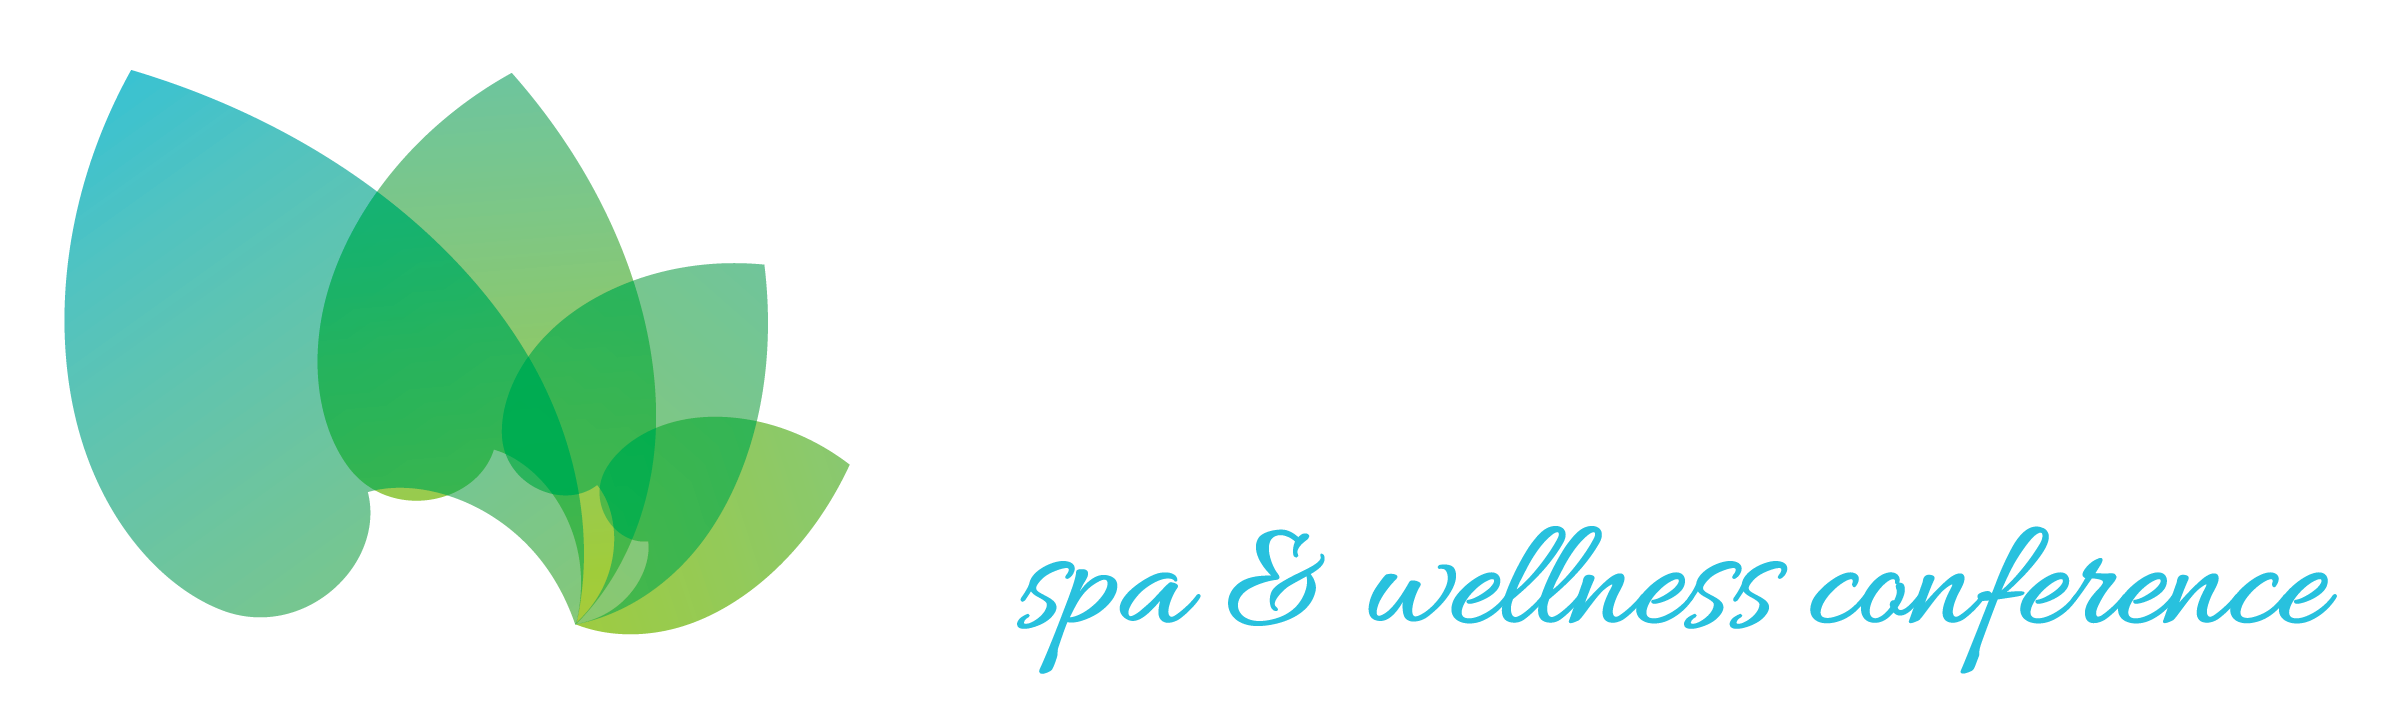 Spa wellness logo  2019 Call For Speakers - LEAD